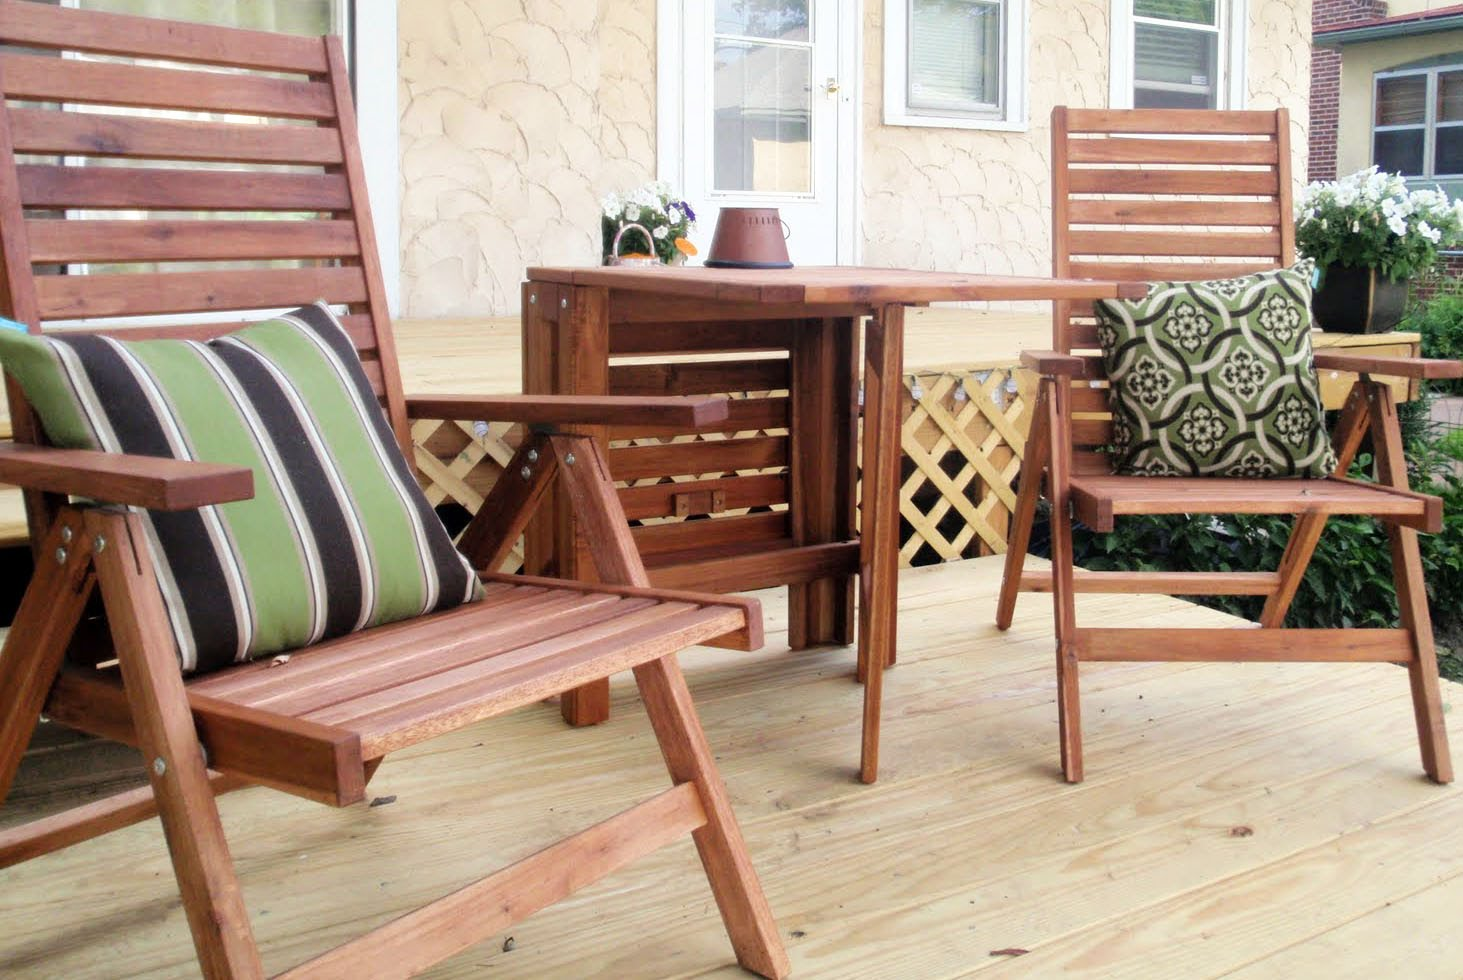 Patio Furniture Ikea 10 Methods To Turn Your Place More Worthwhile Interior Exterior Ideas